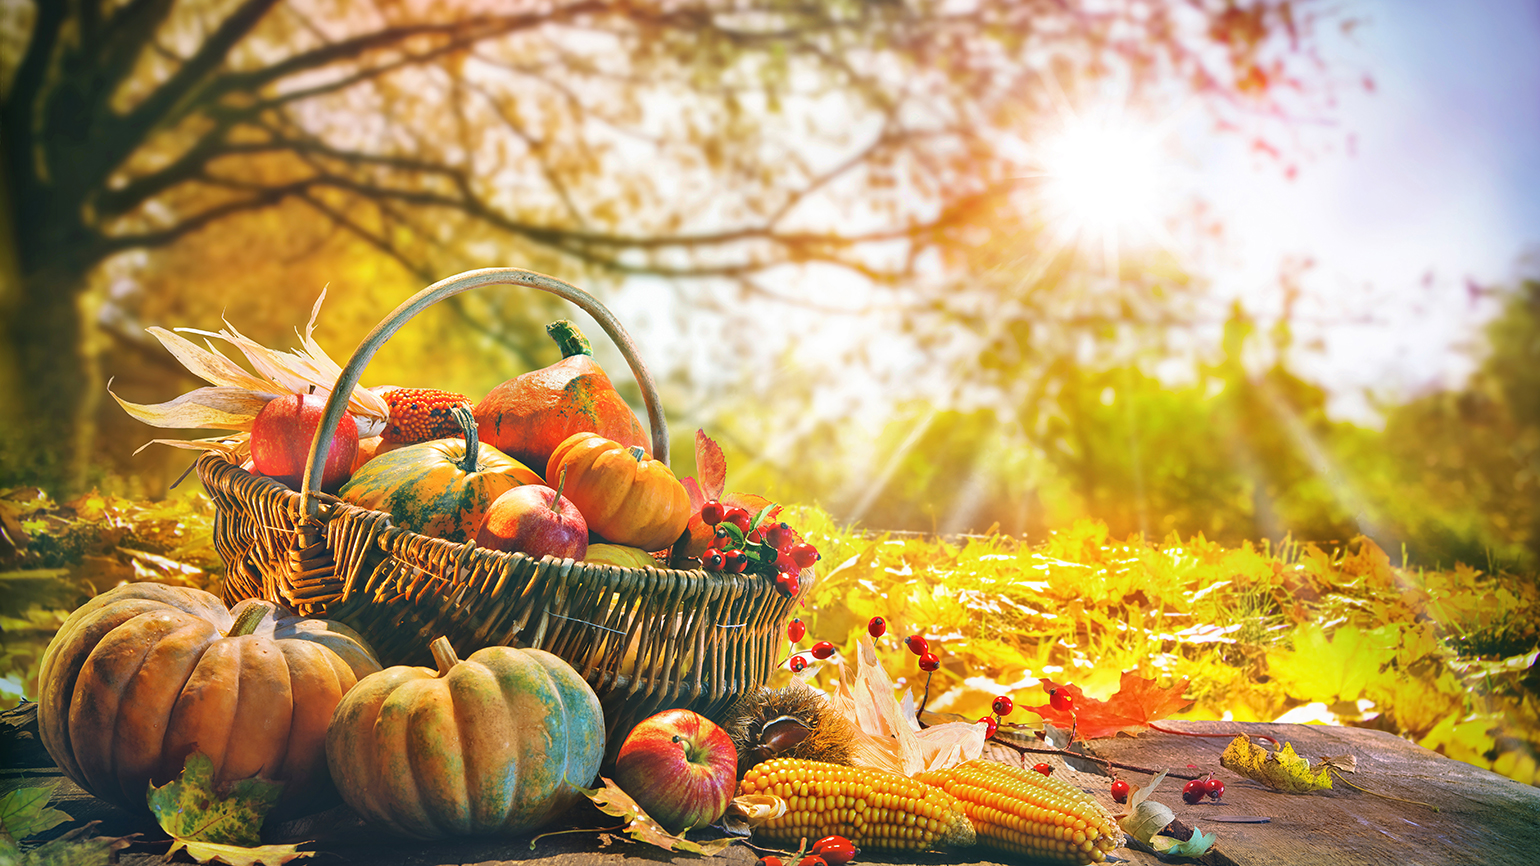 A basket of autumn gourds and fruit rests in a sundrenched field